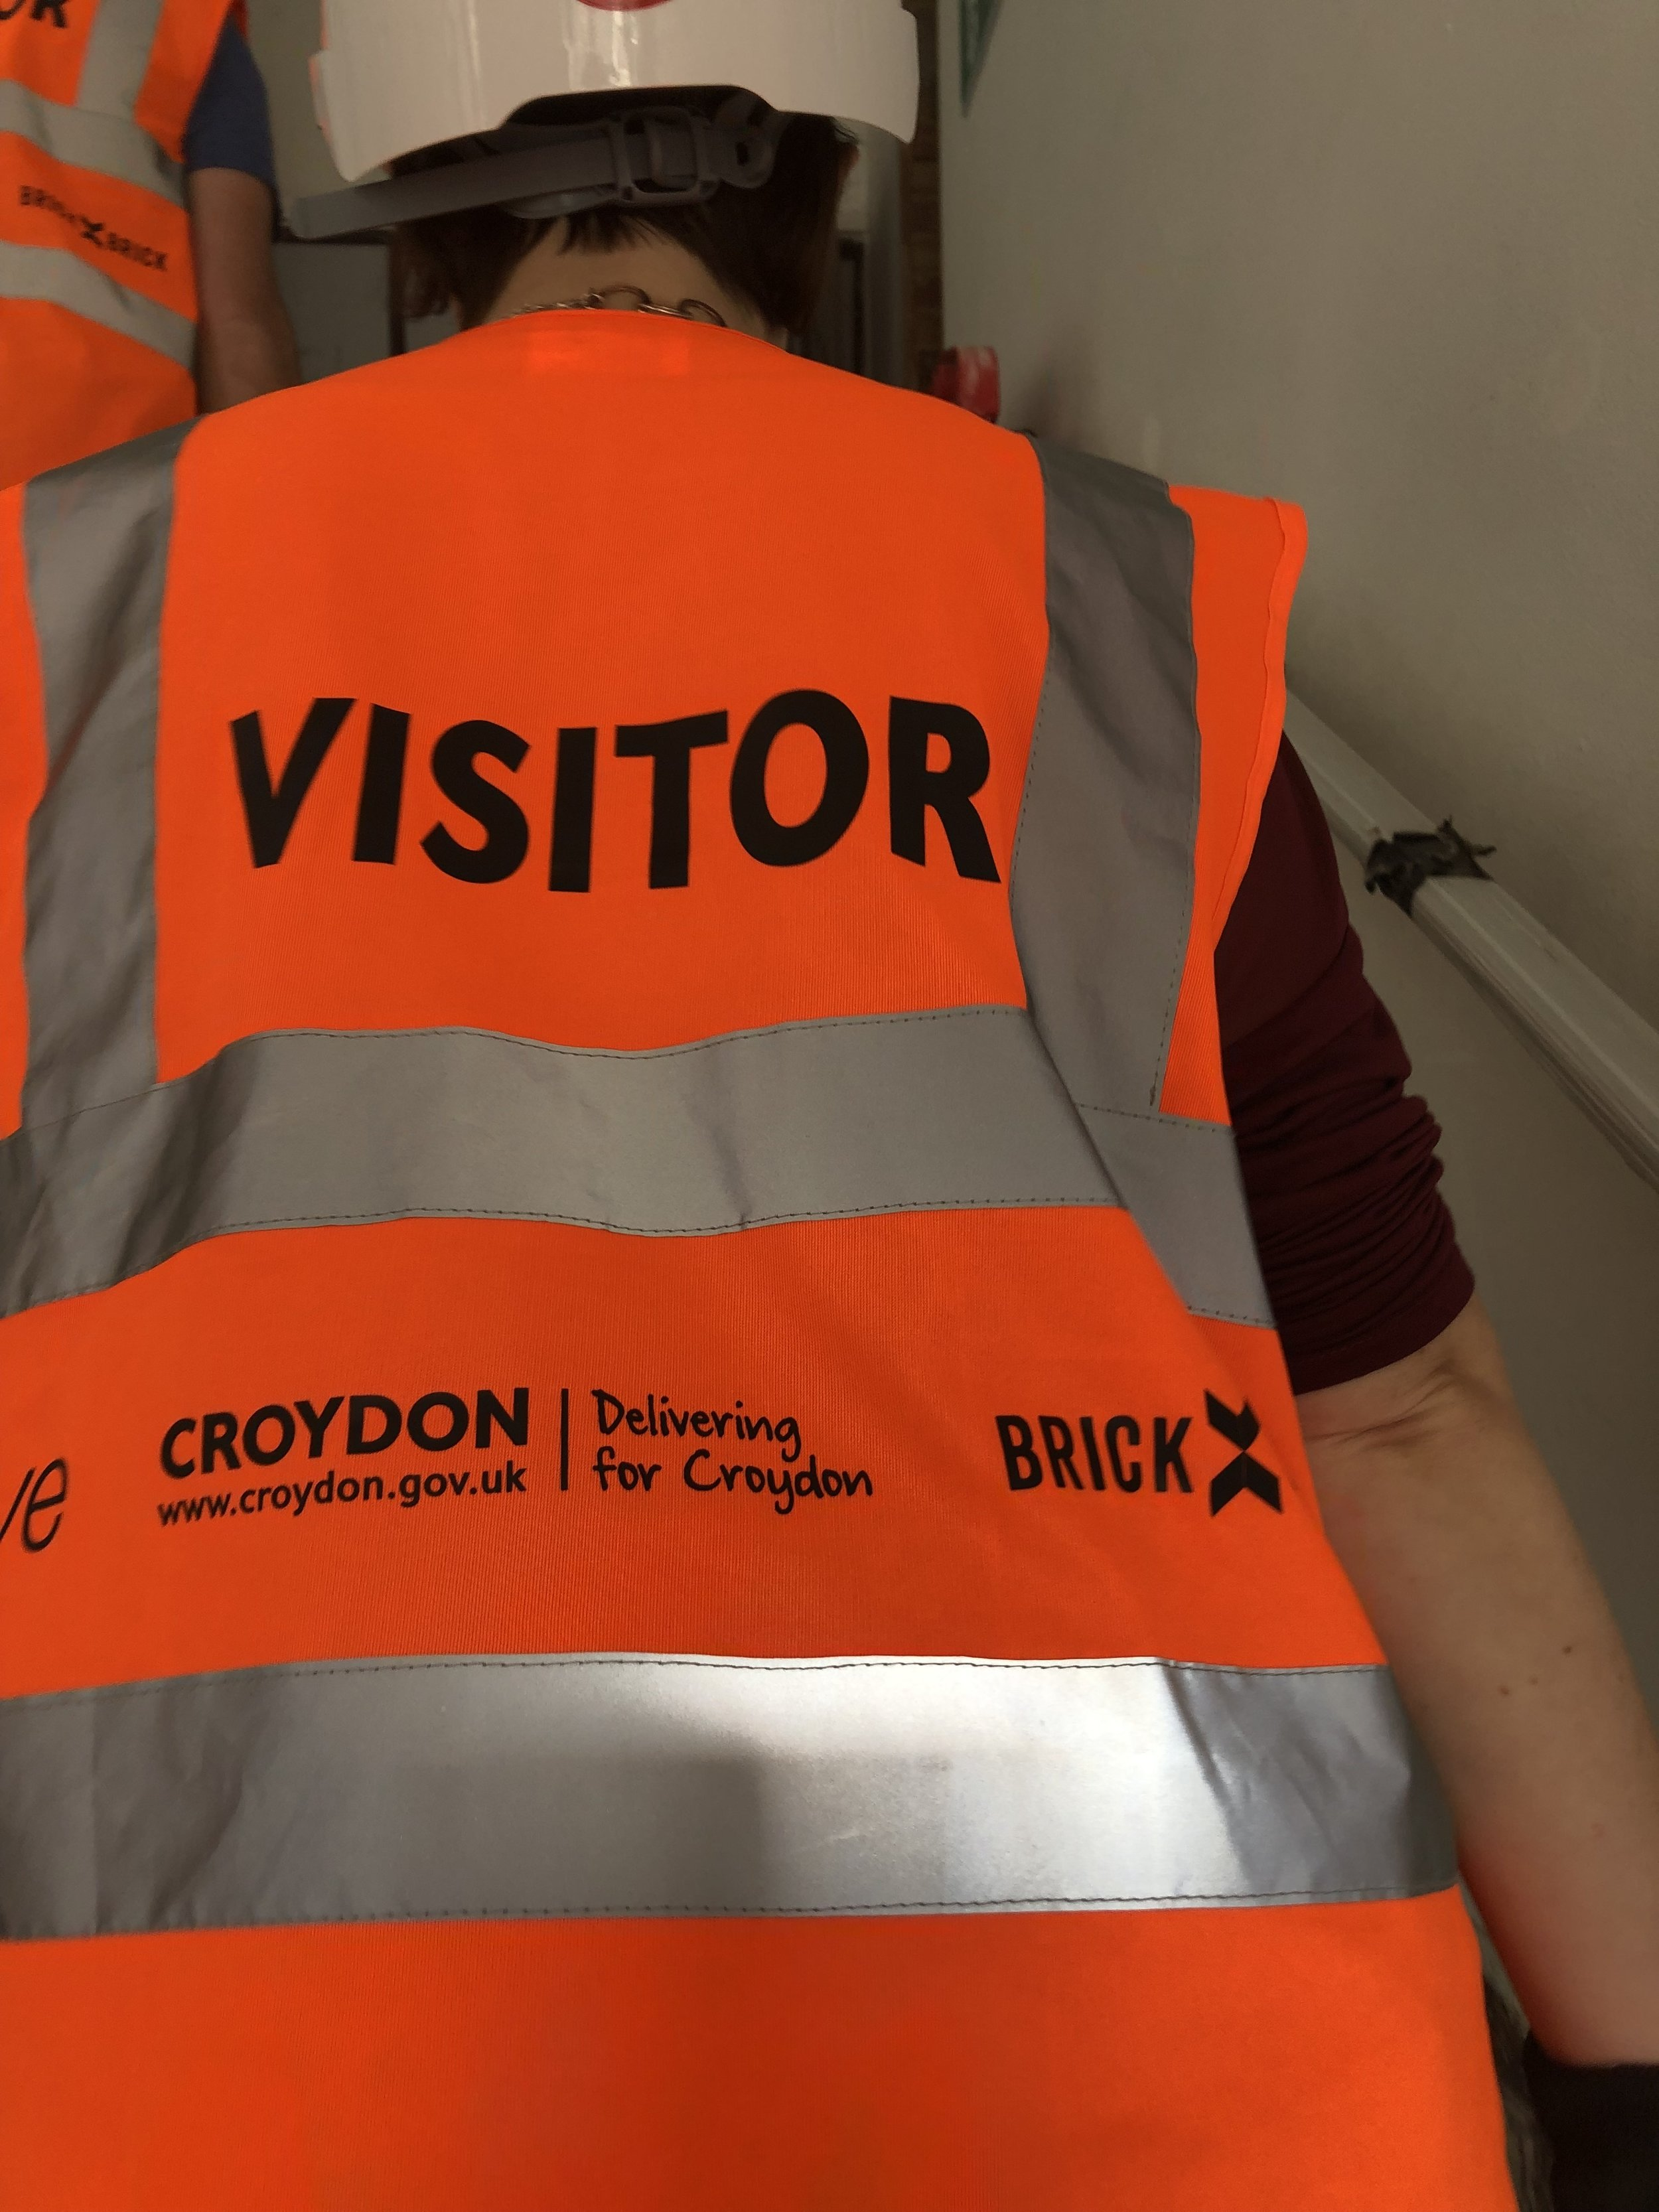 High vis, hard hats and PPE abound, we headed off to explore the building!